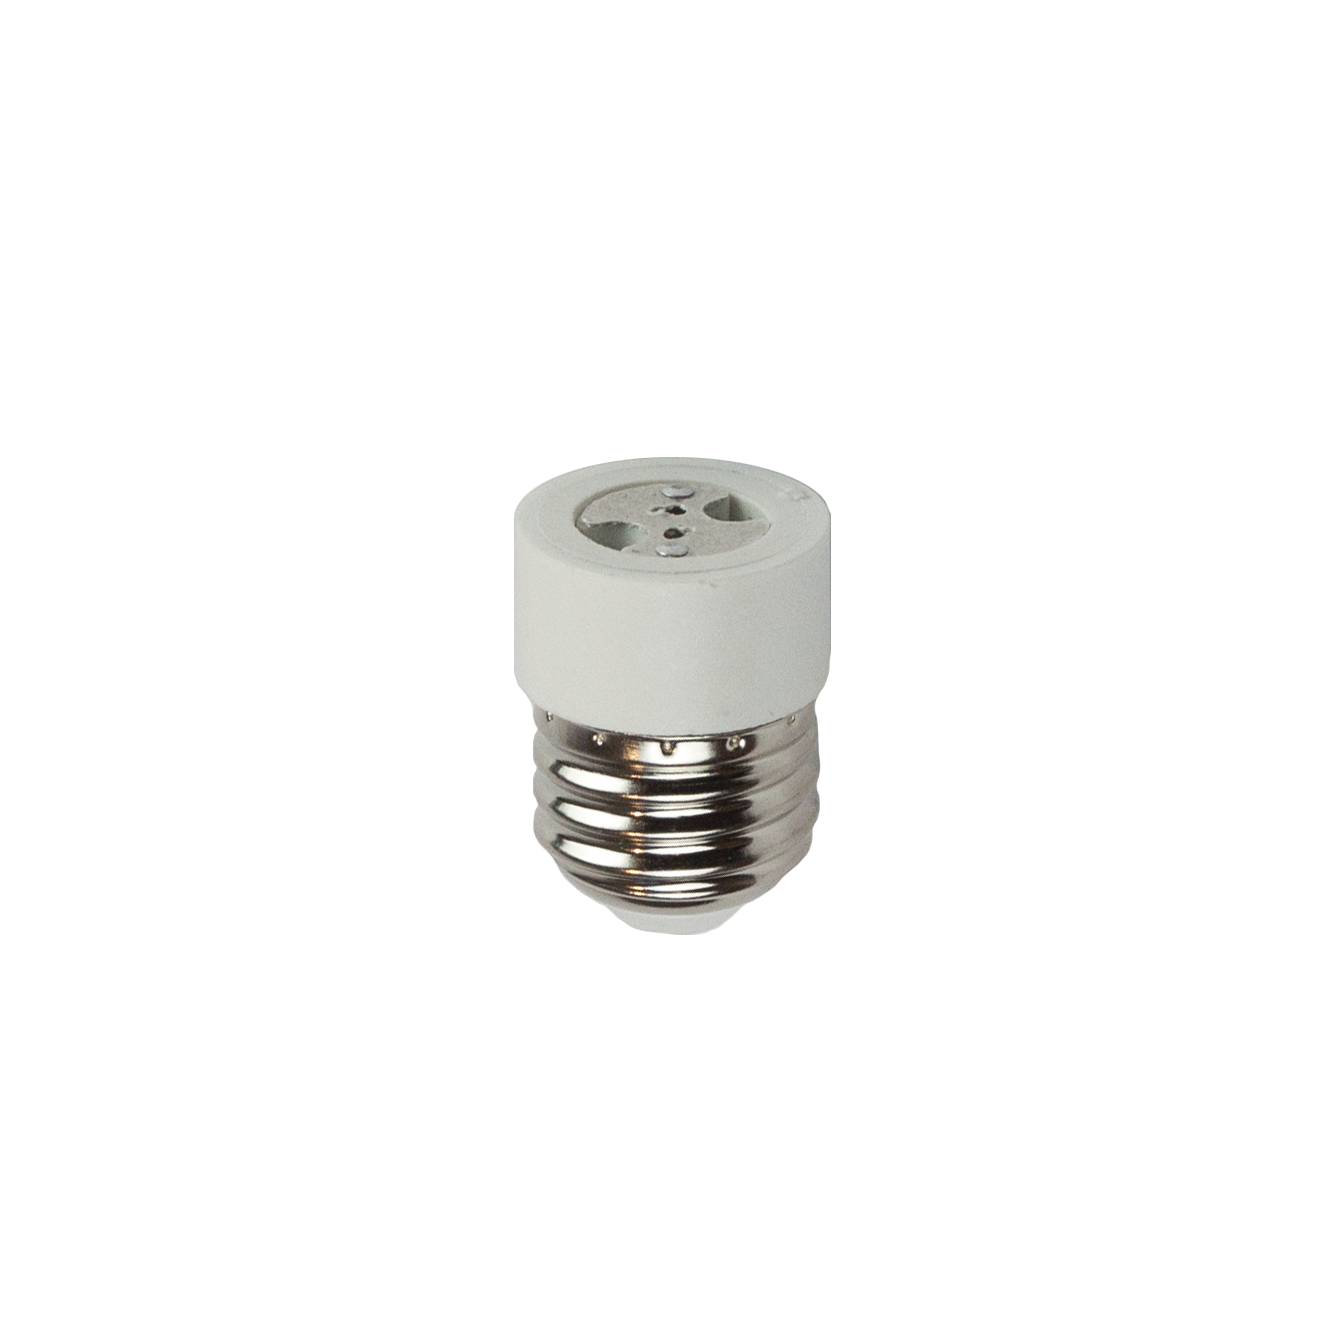 MB2G4 Adapter v2.png